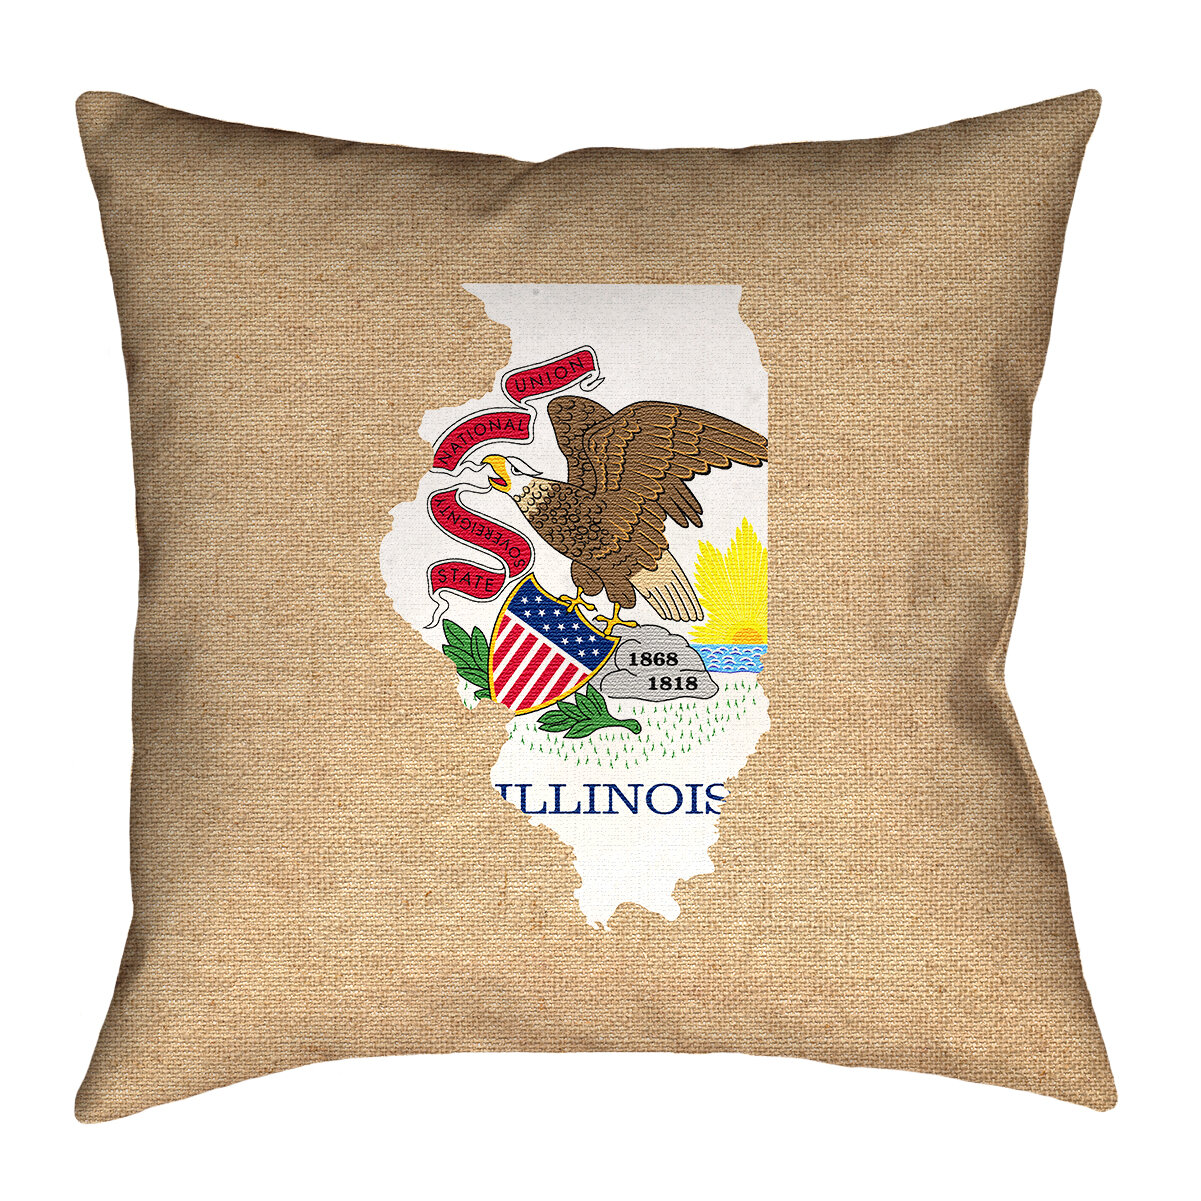 Ebern Designs Fawcett Illinois Flag Black 28 X 28 Floor Pillows Double Sided Print With Concealed Zipper Insert In Faux Suede Double Sided Print Pillow Cover Wayfair